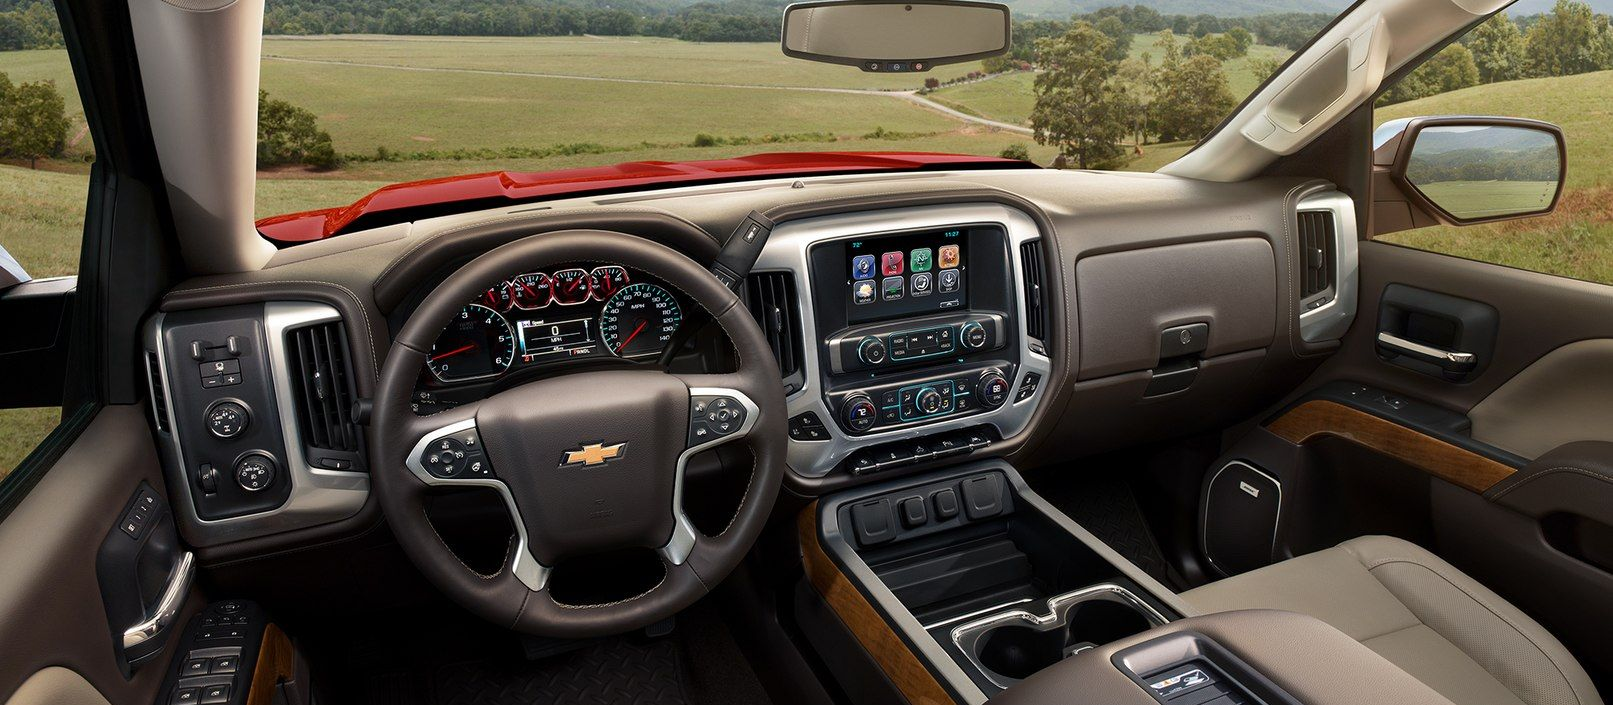 2019 Chevrolet Silverado Dashboard